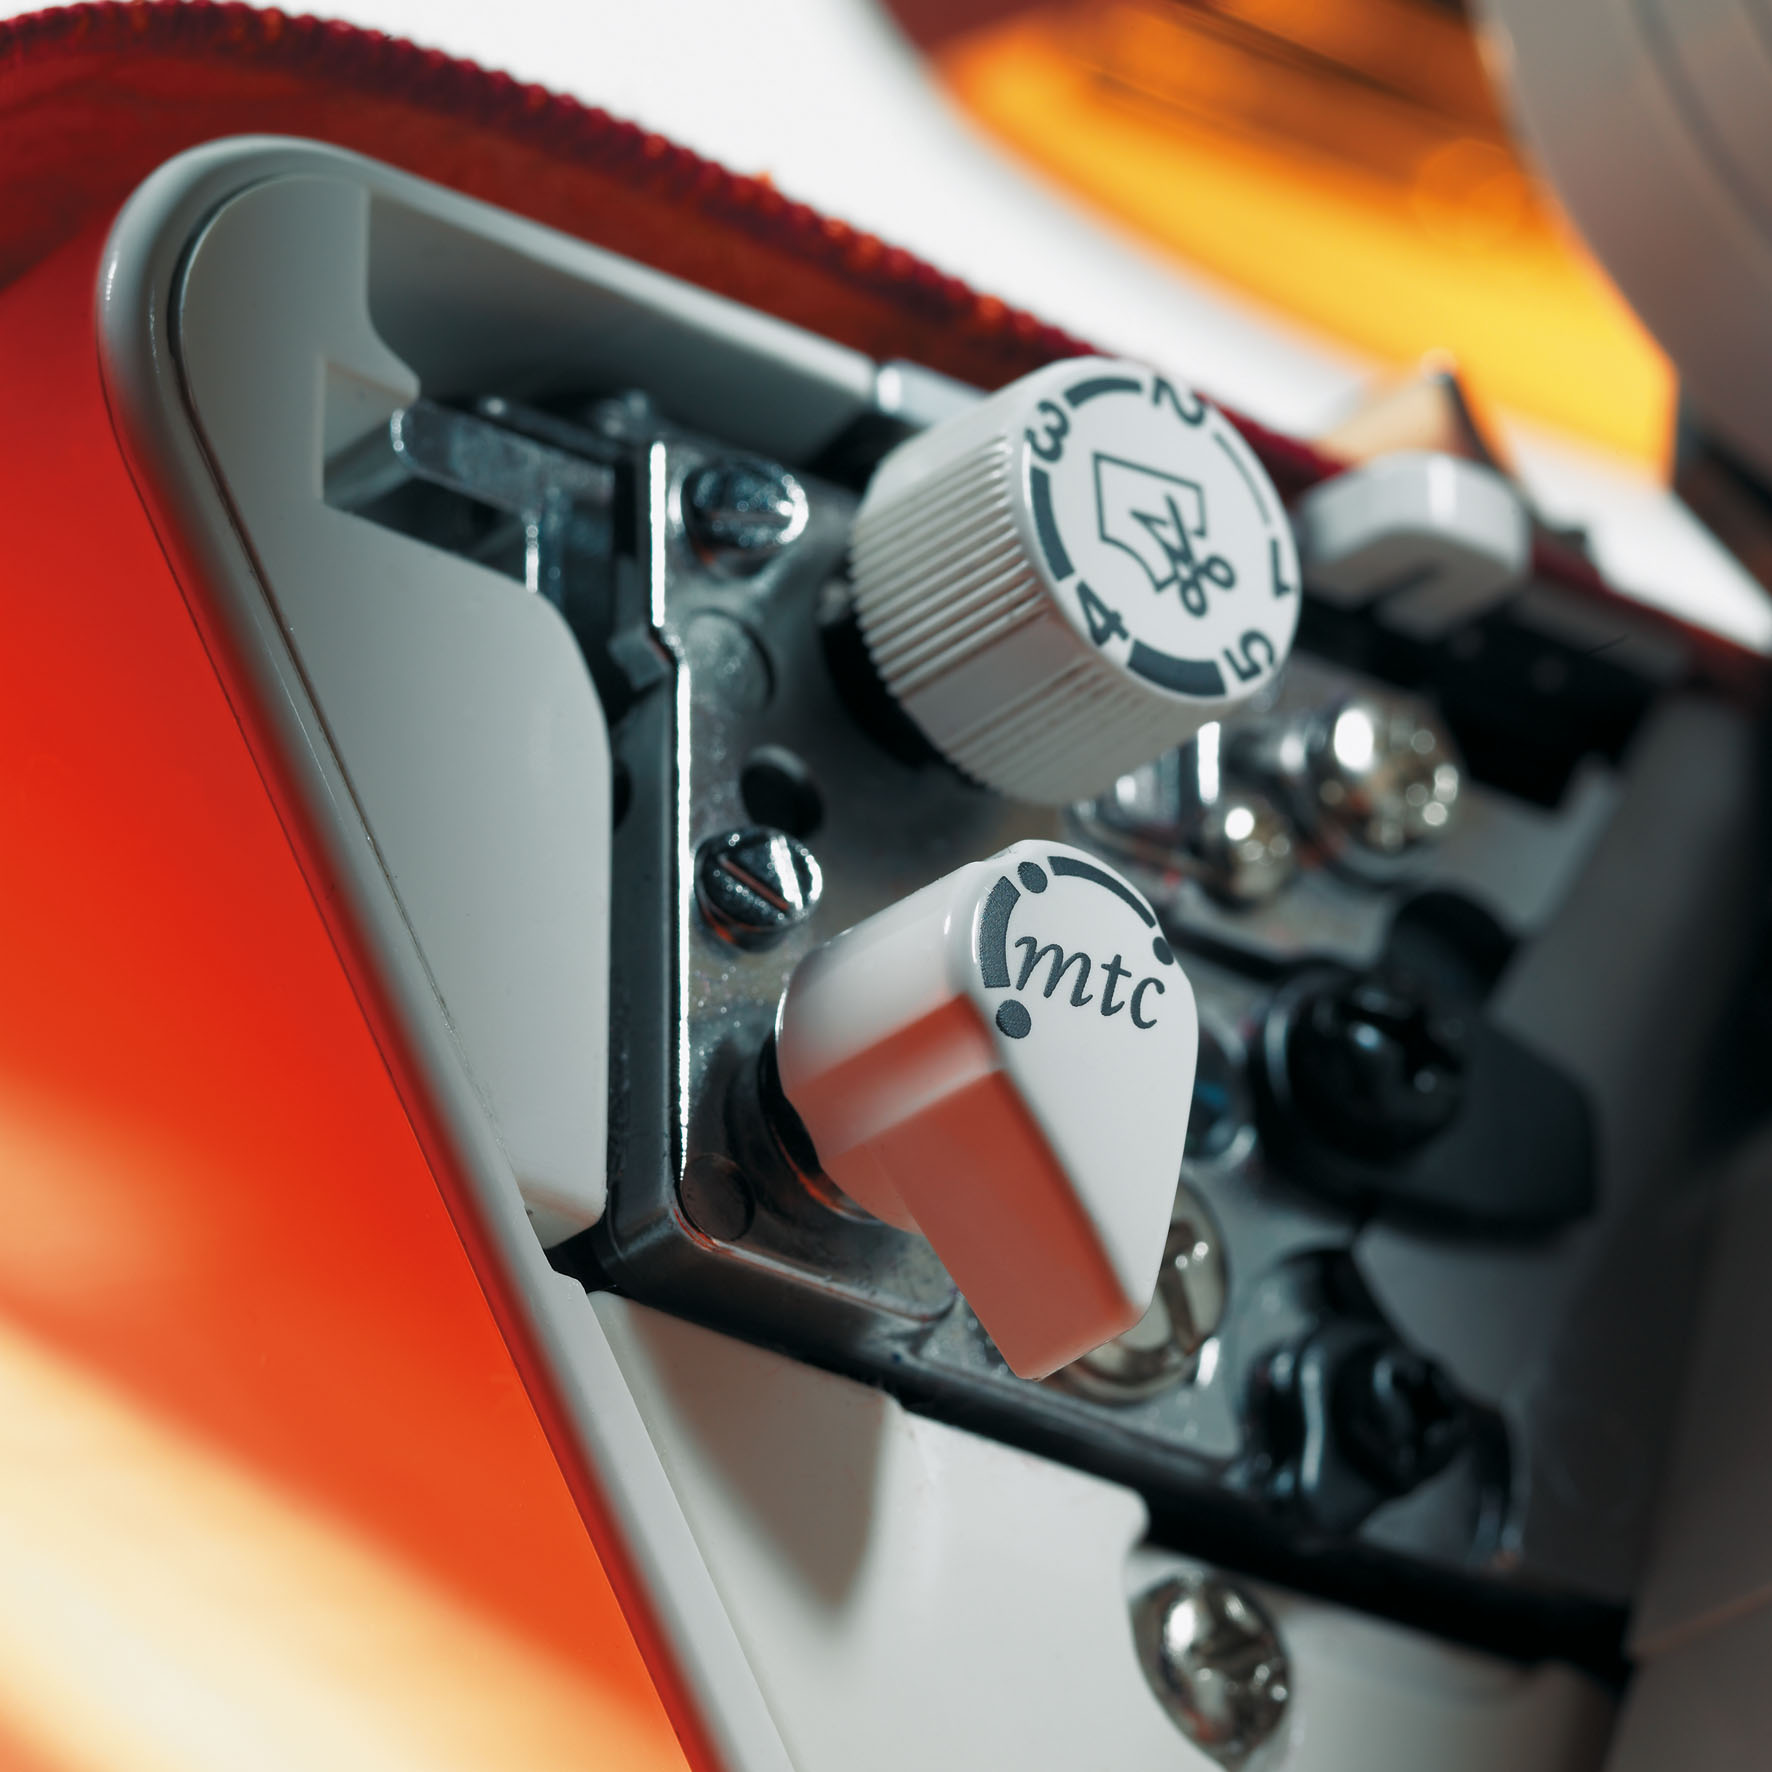 mtc system: Precise control of over-edge thread length